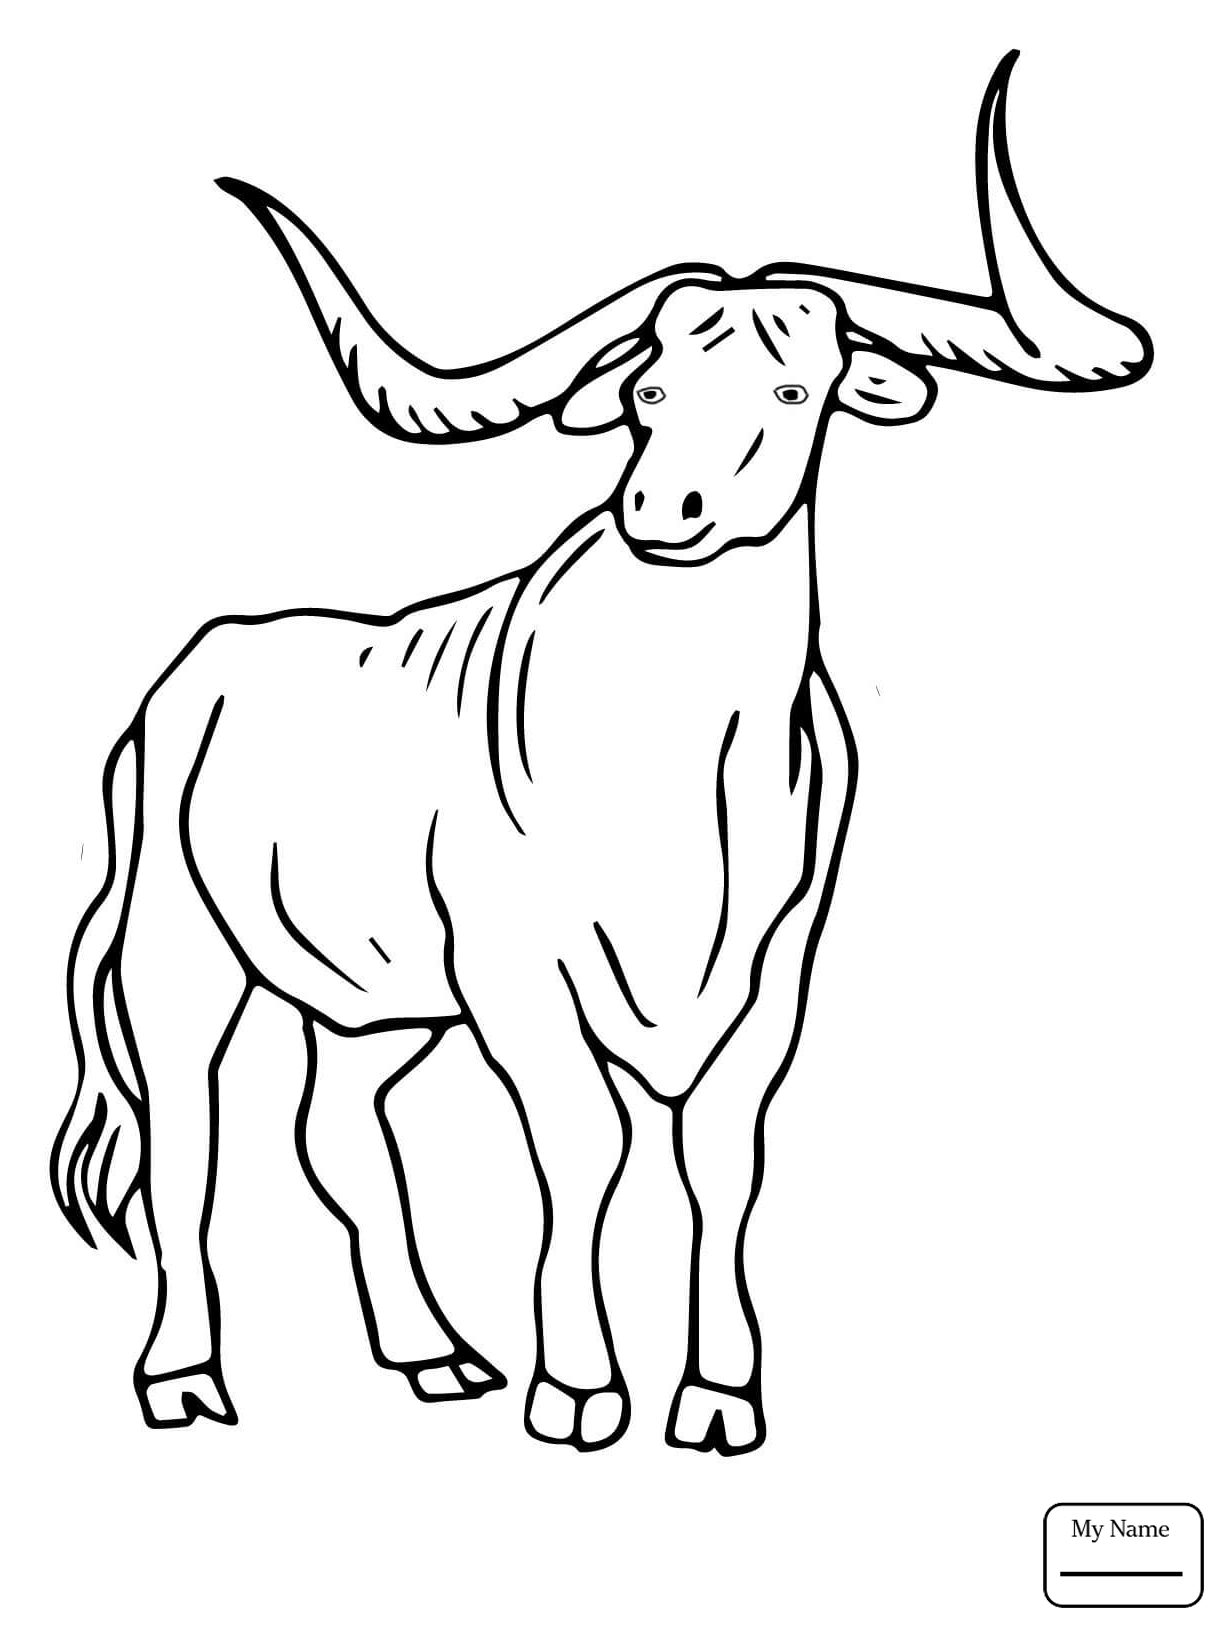 1224x1632 Coloring Pages For Kids Angry Bull Mammals Cartoon Cattle